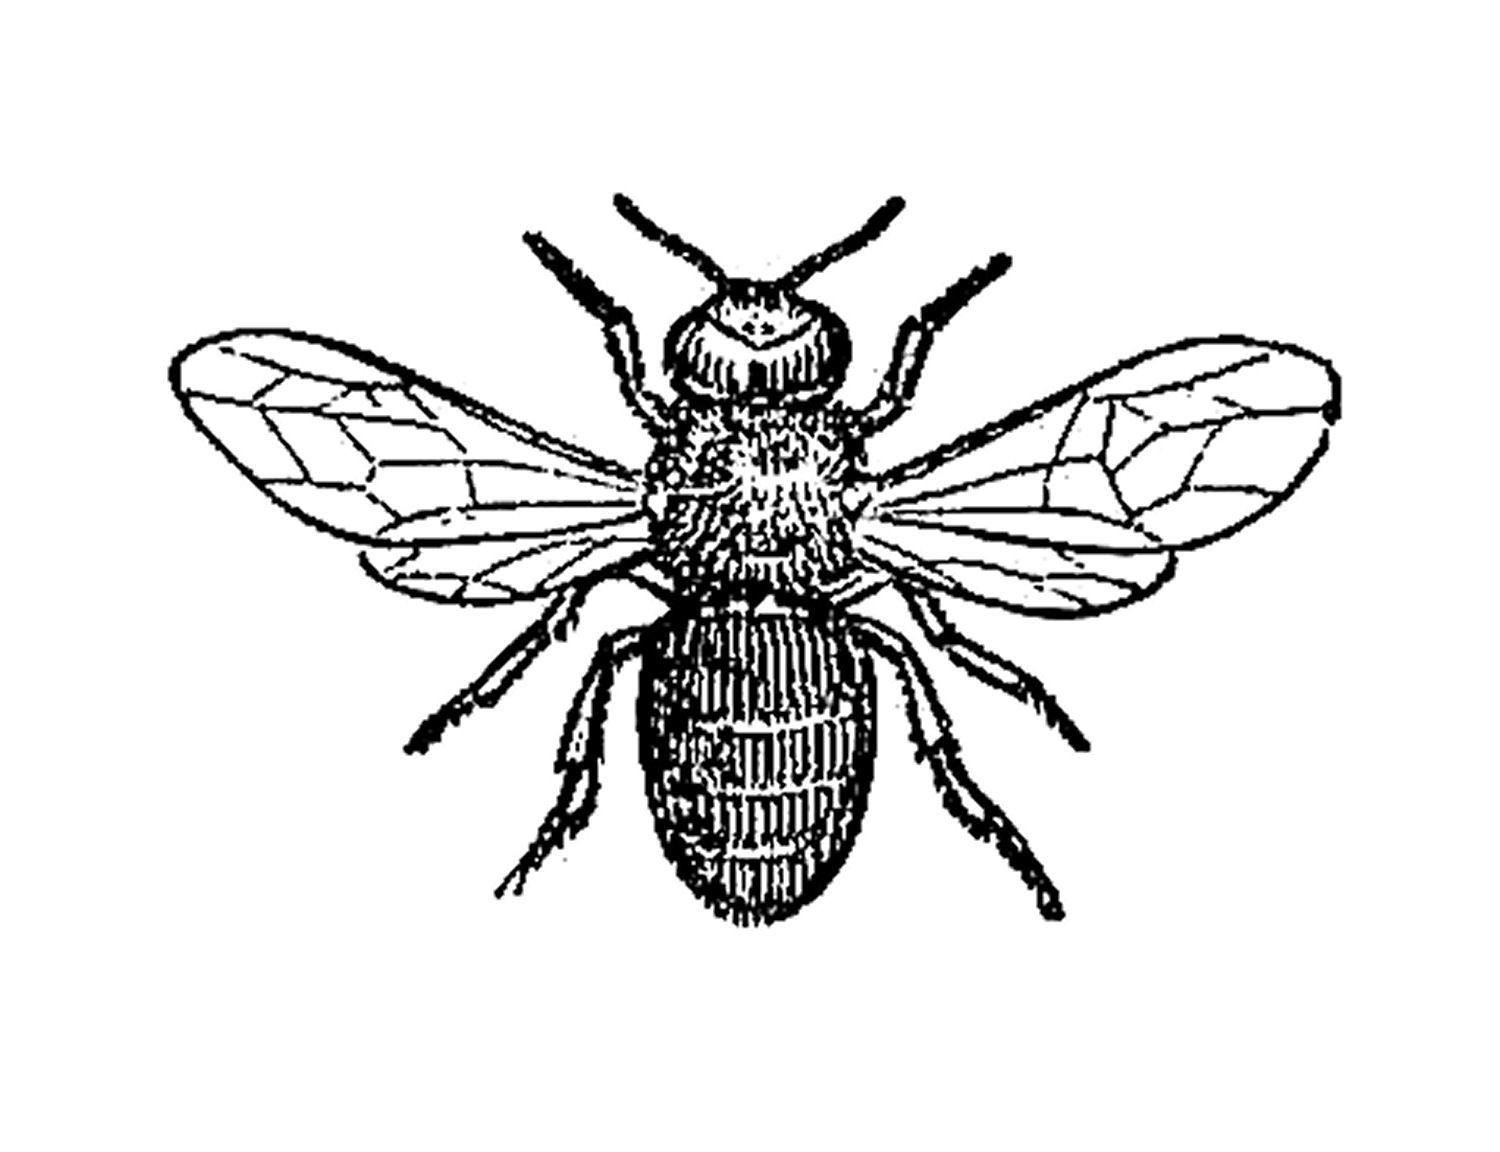 Antique Images: Insect Clip Art: Black and White Illustration of